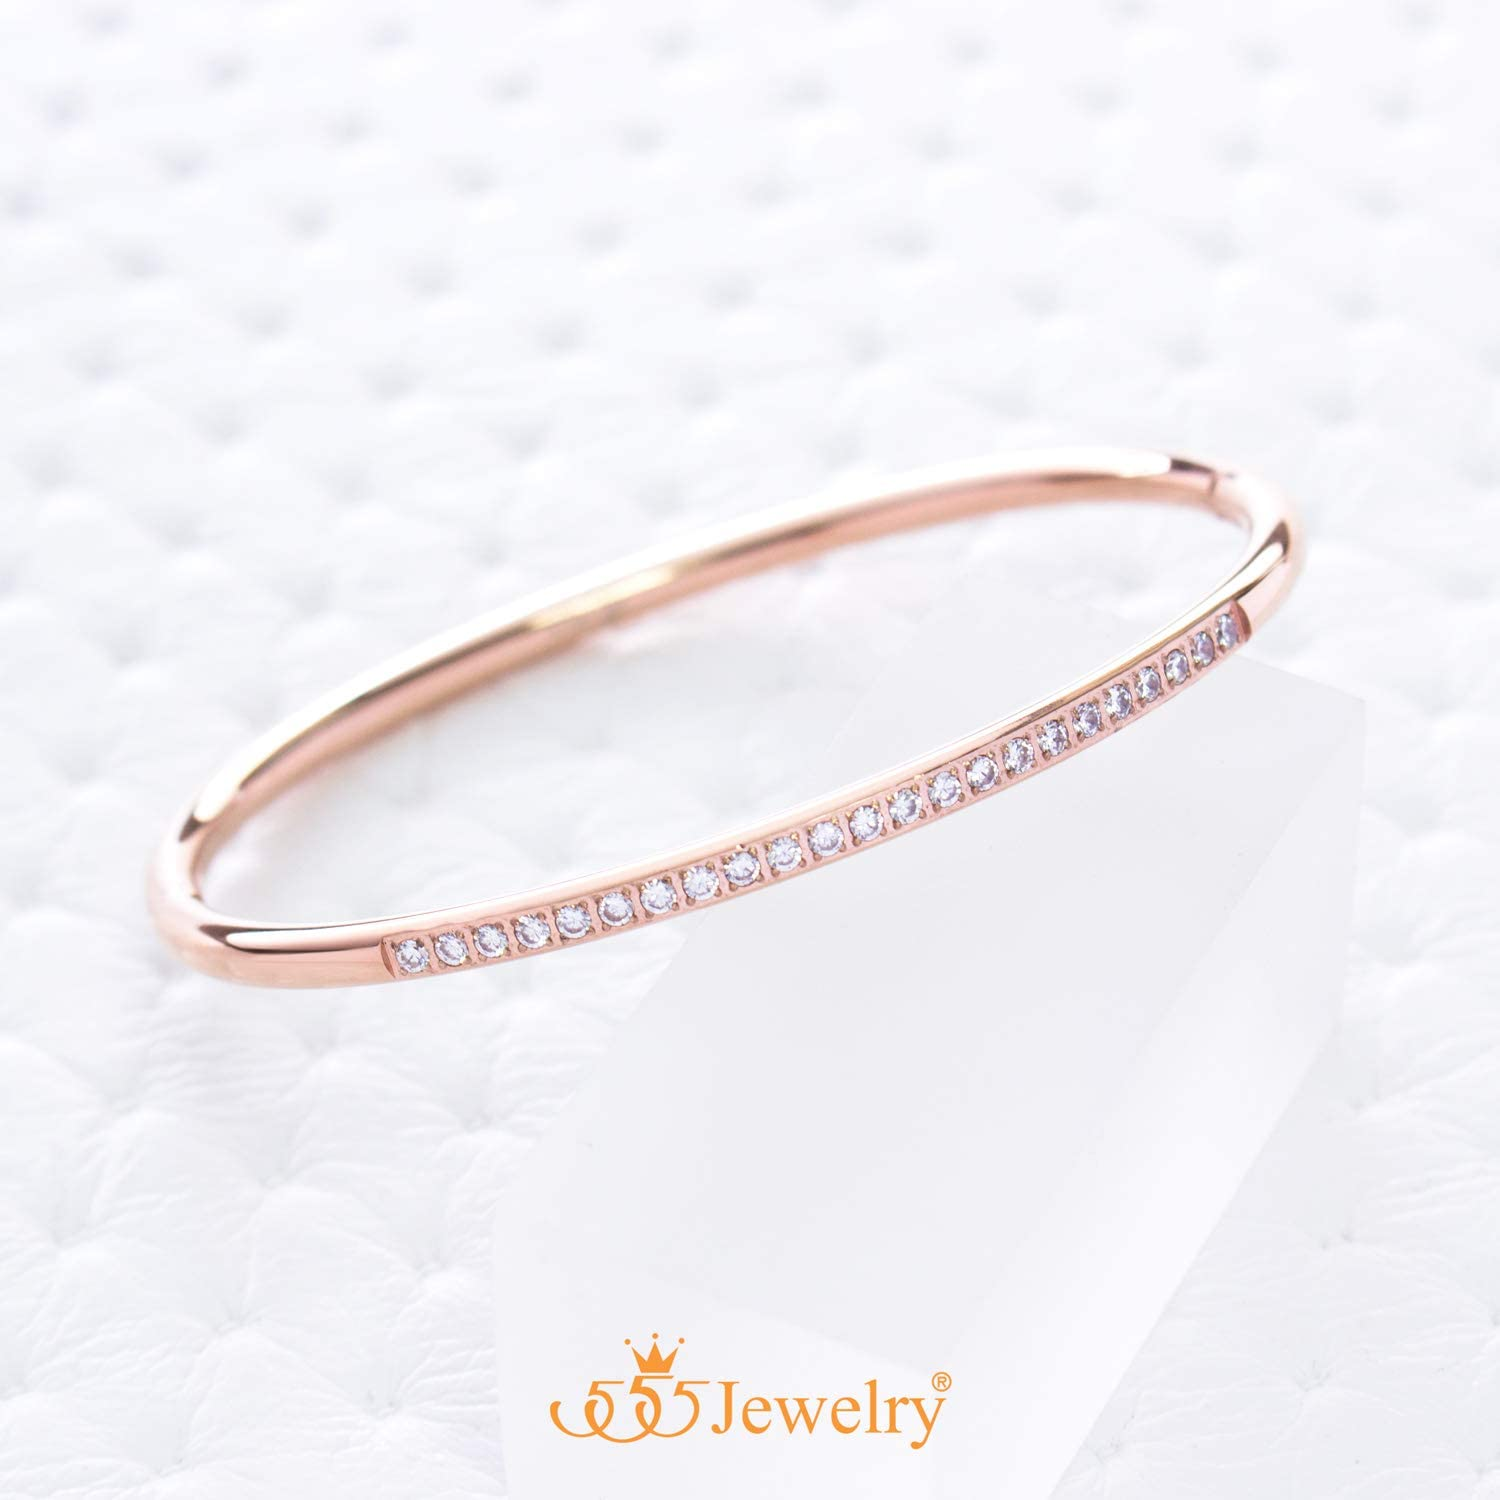 555Jewelry Stainless Steel & CZ Hinged Oval Cuff Bangle Bracelet for Women